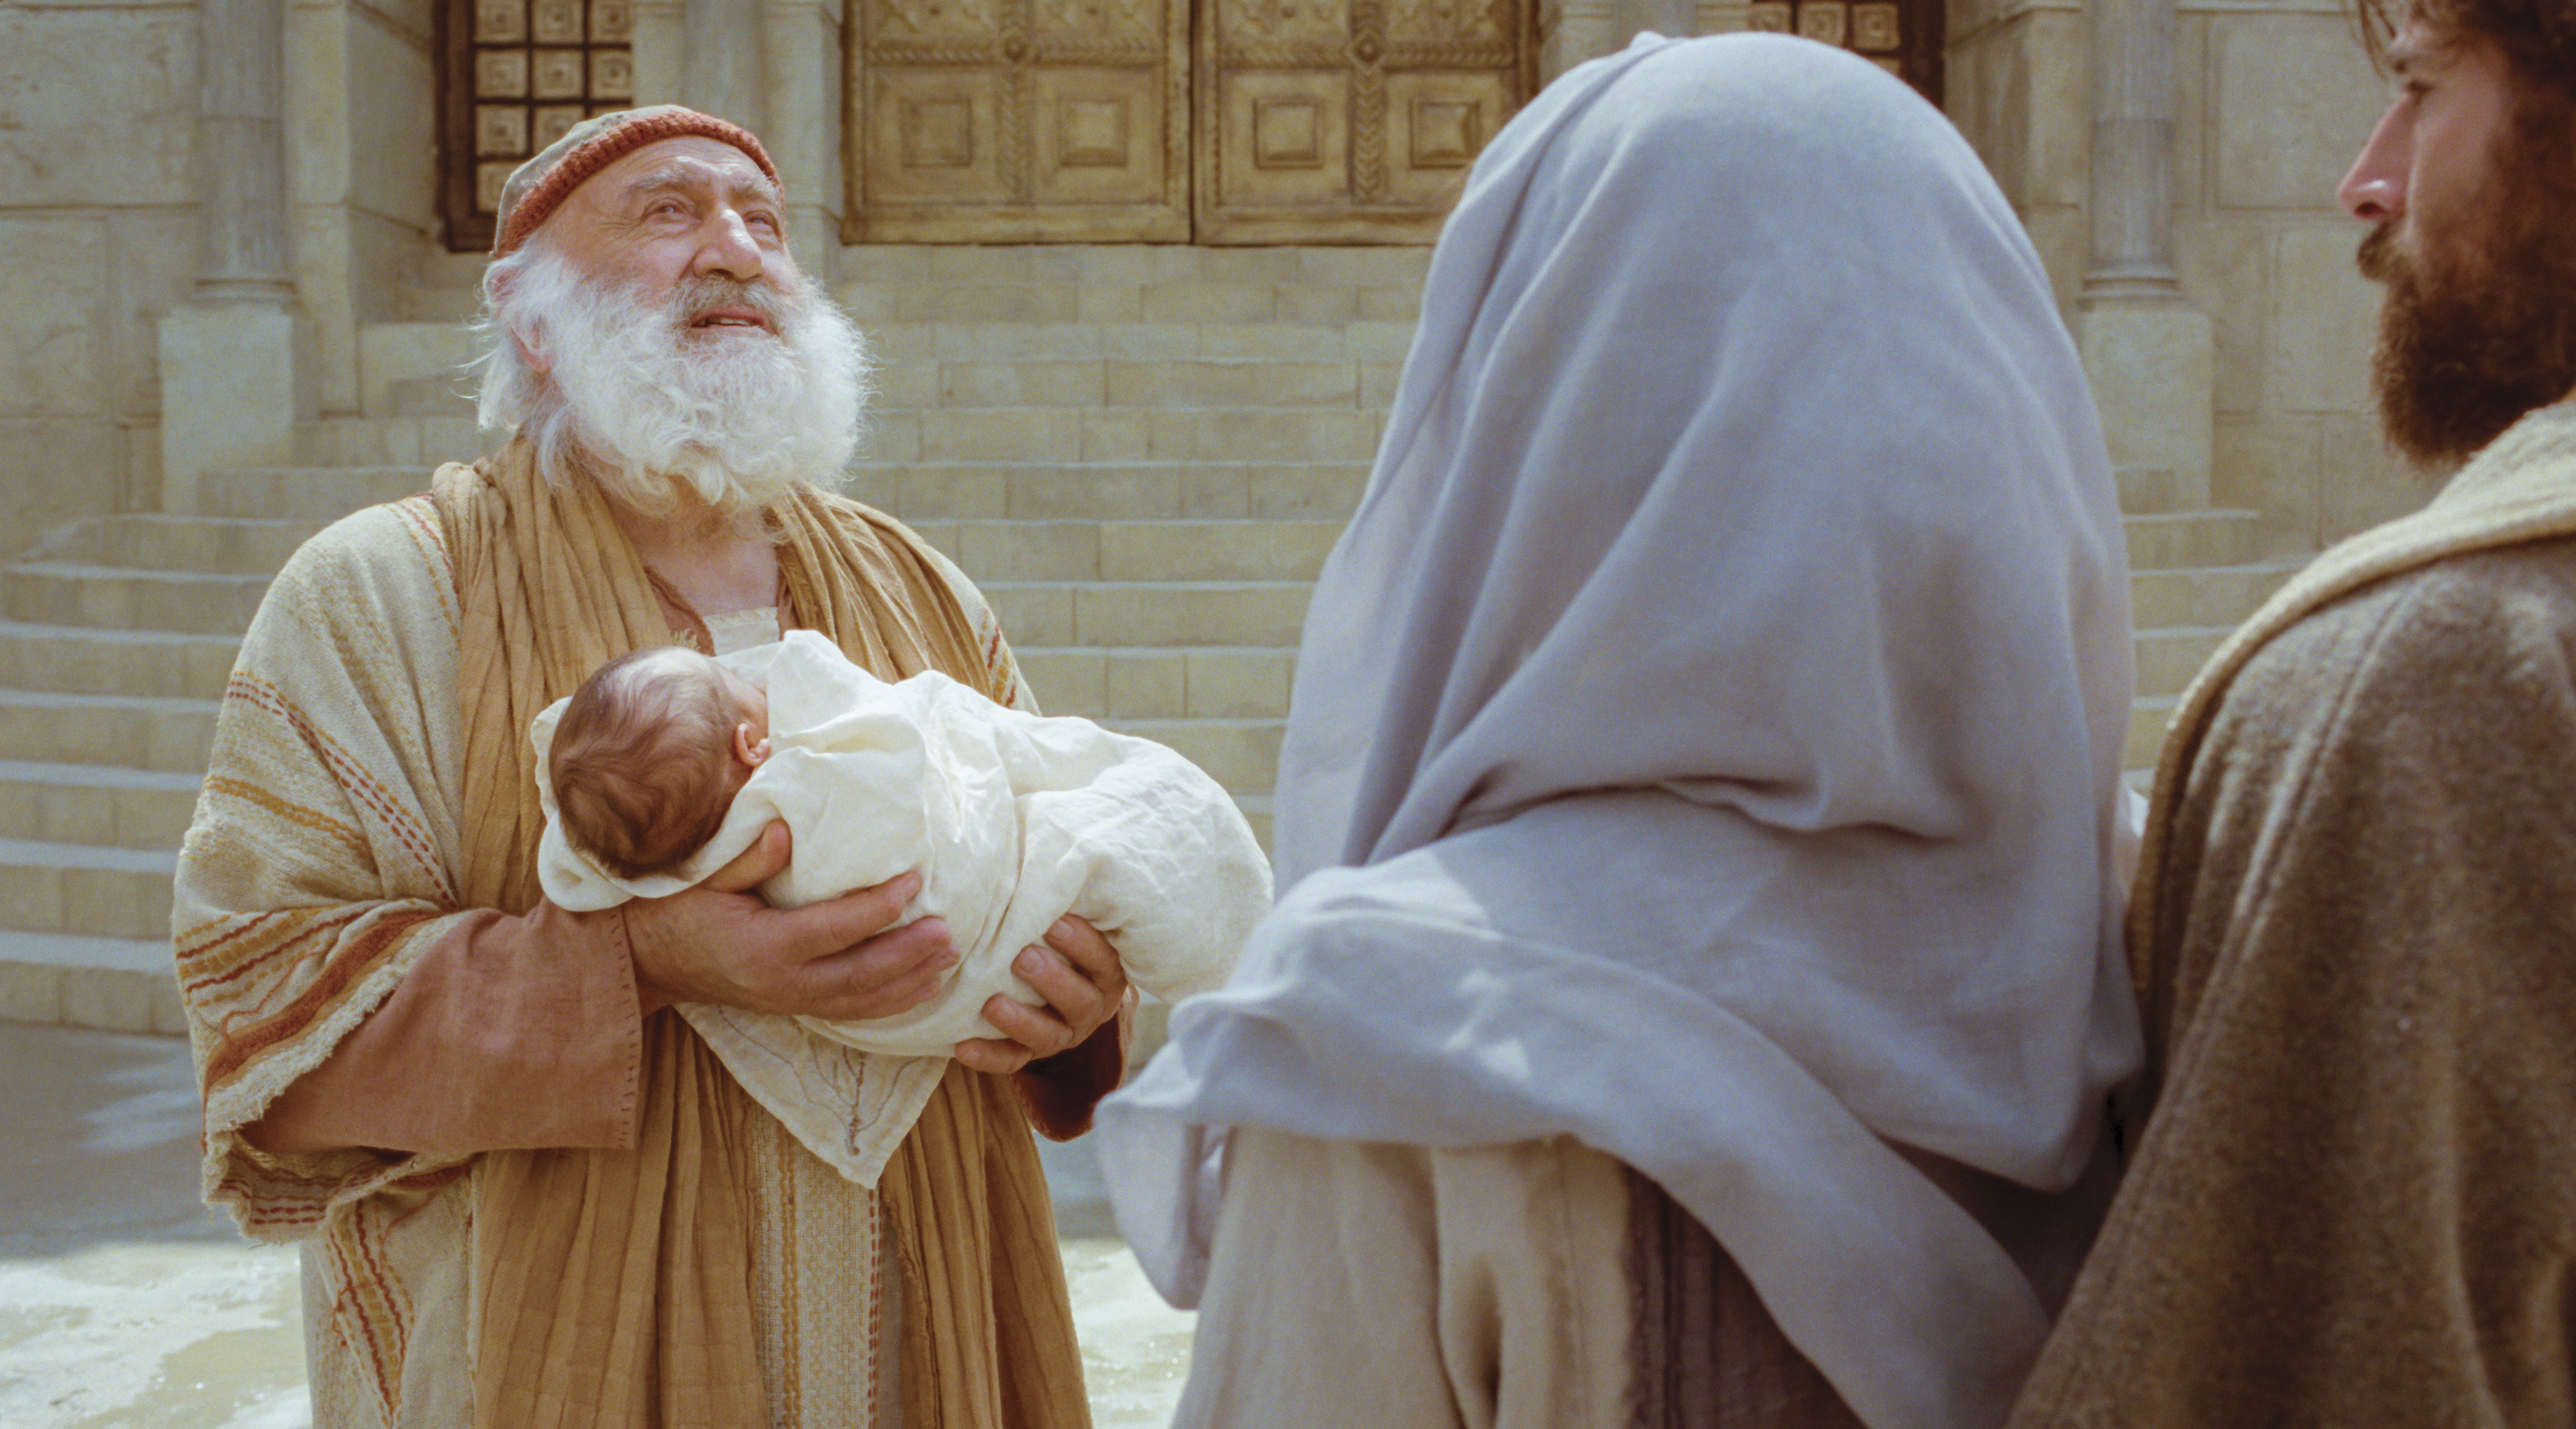 A priest holds Christ as a baby.